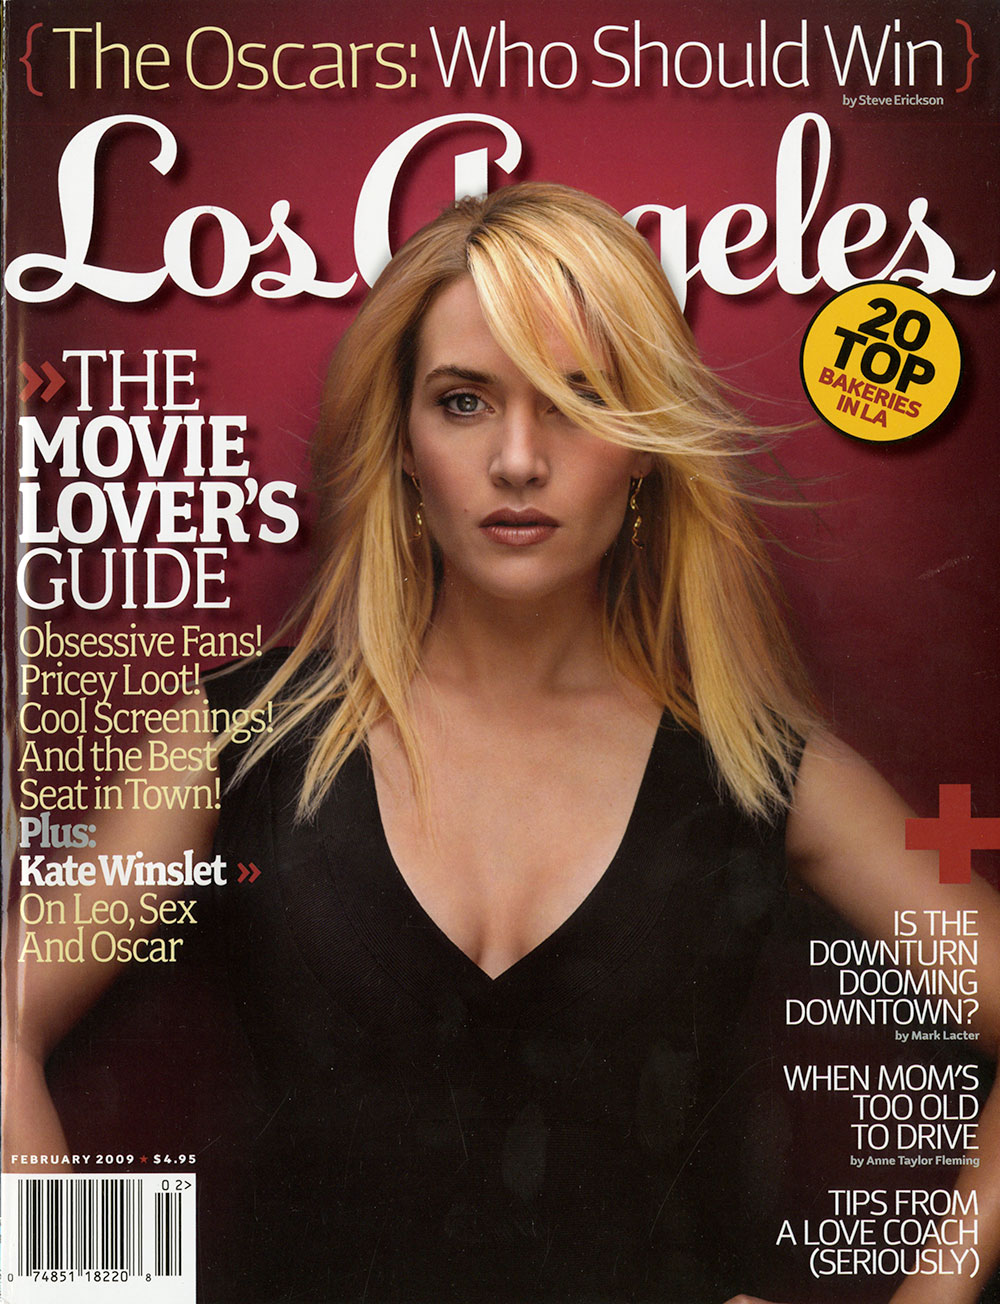 los angeles magazine cover with red background and kate winslet on the cover in a black dress